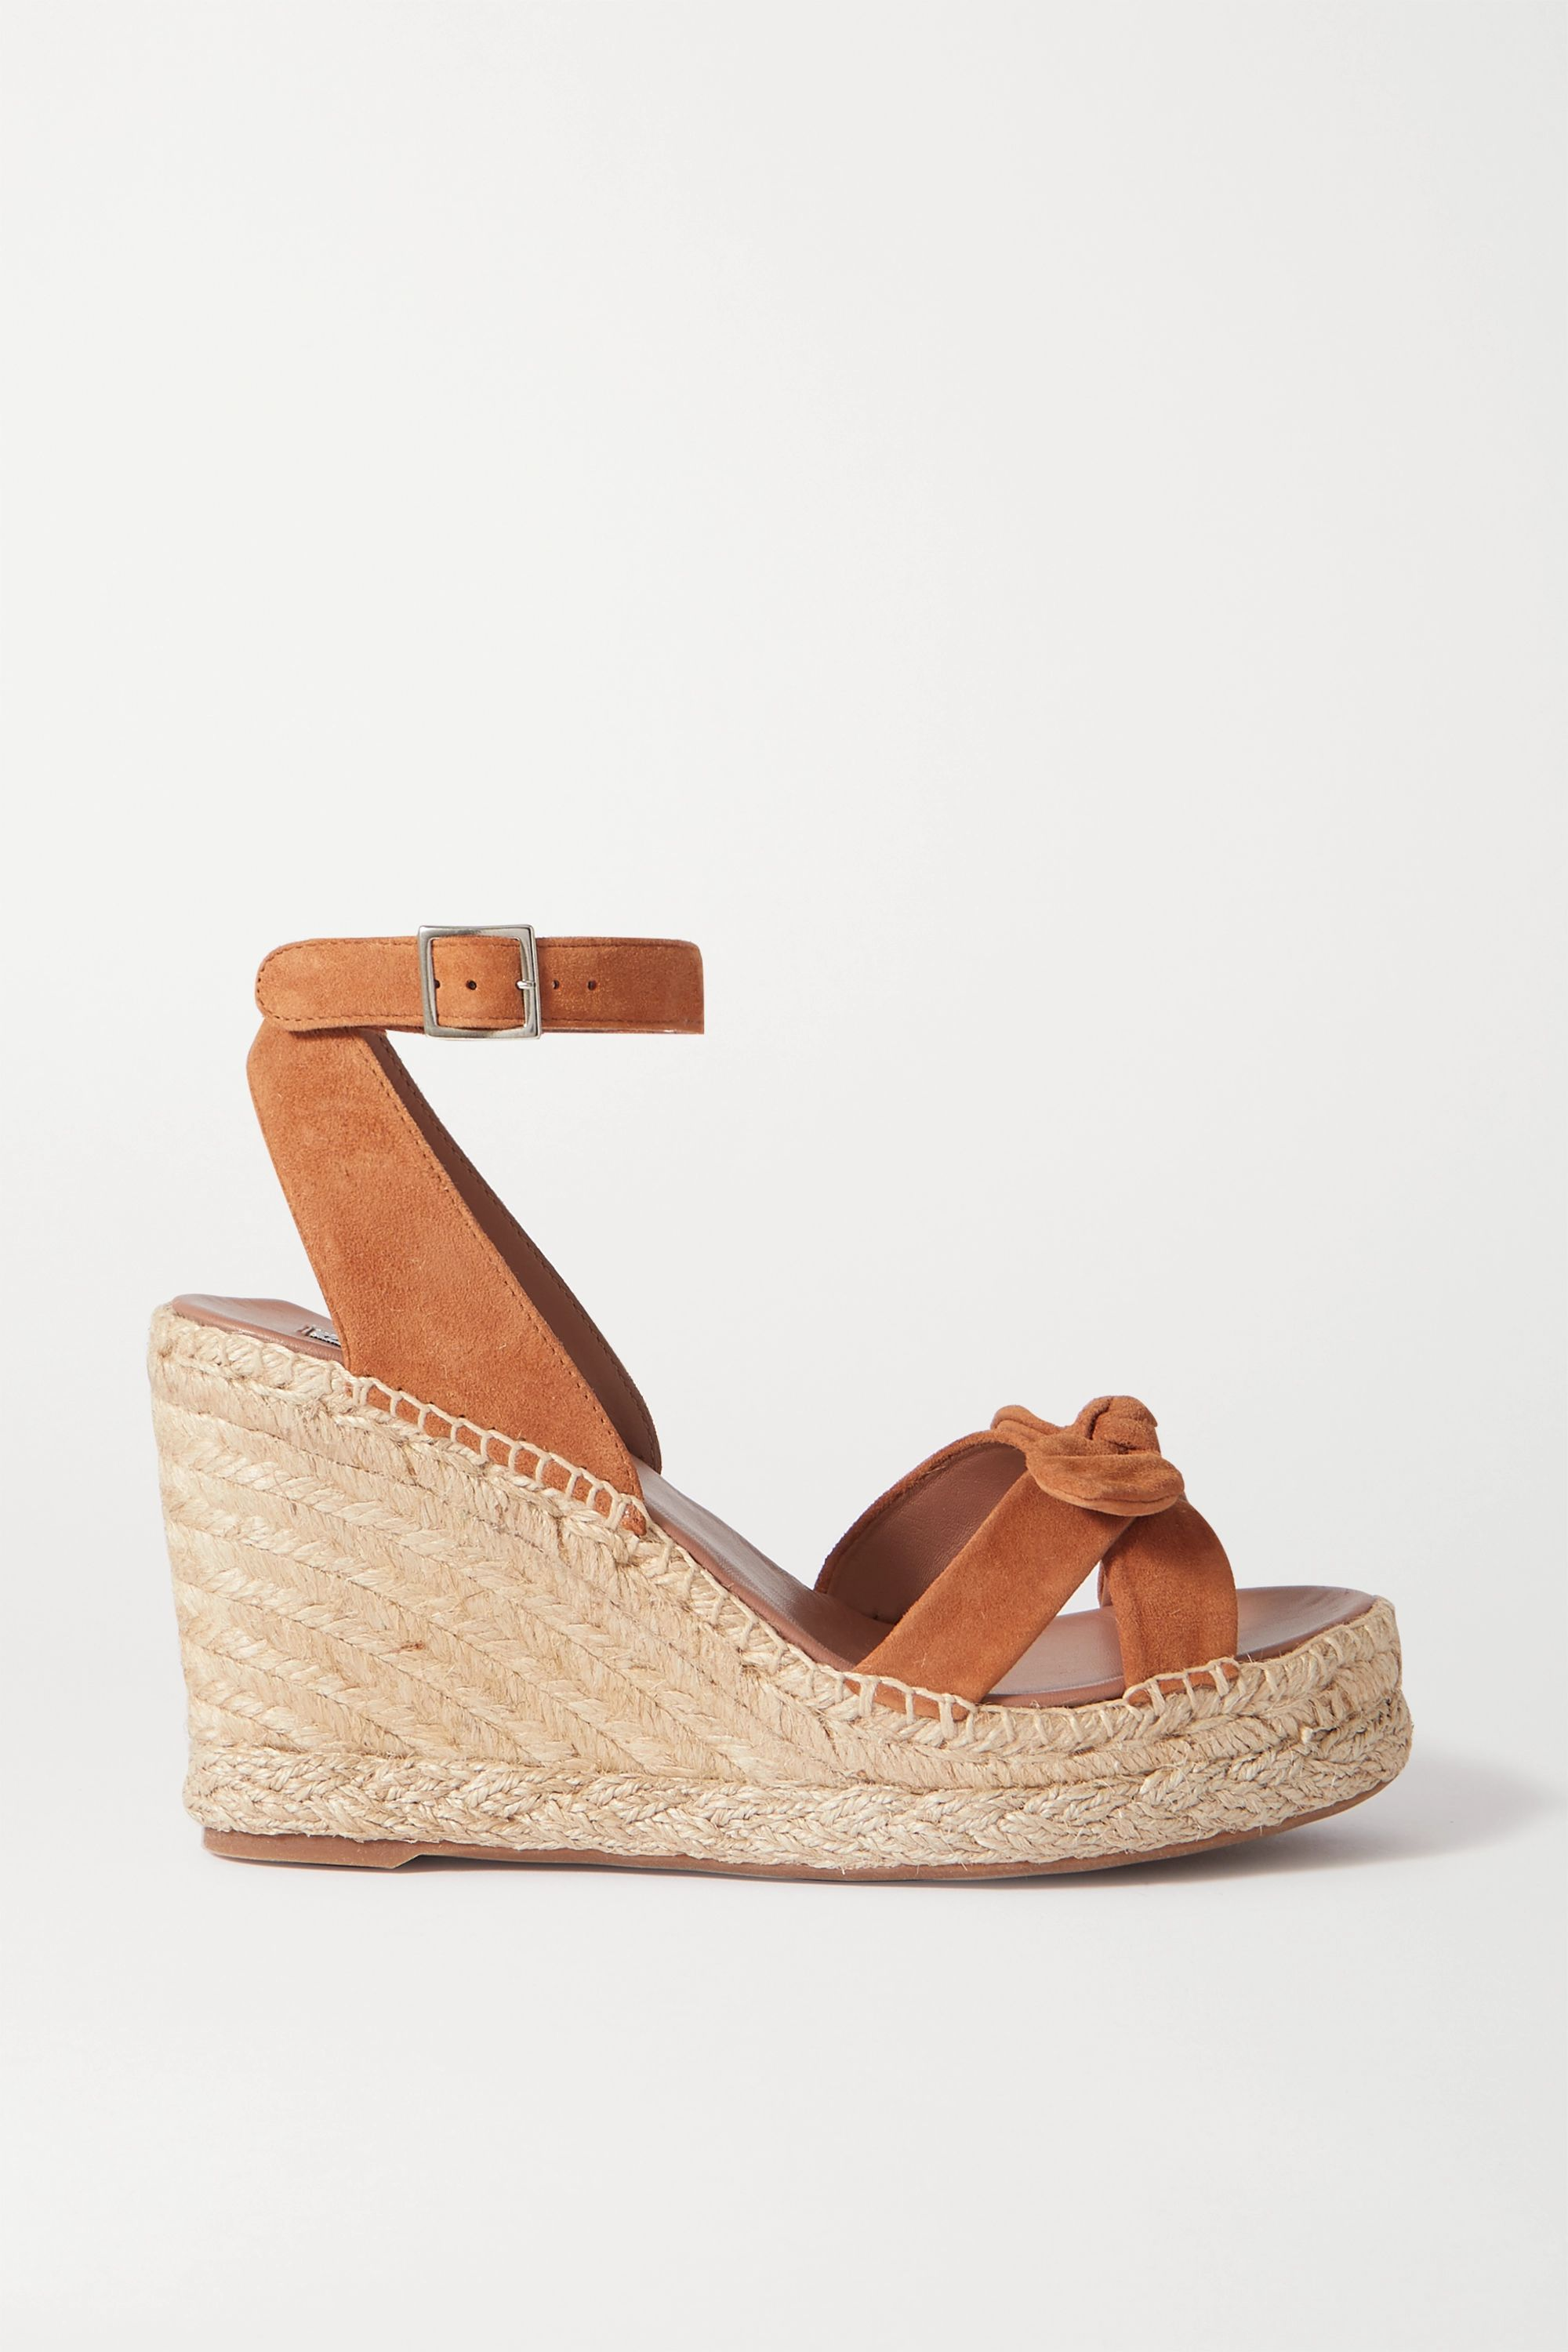 Tan Ross bow-detailed suede espadrille